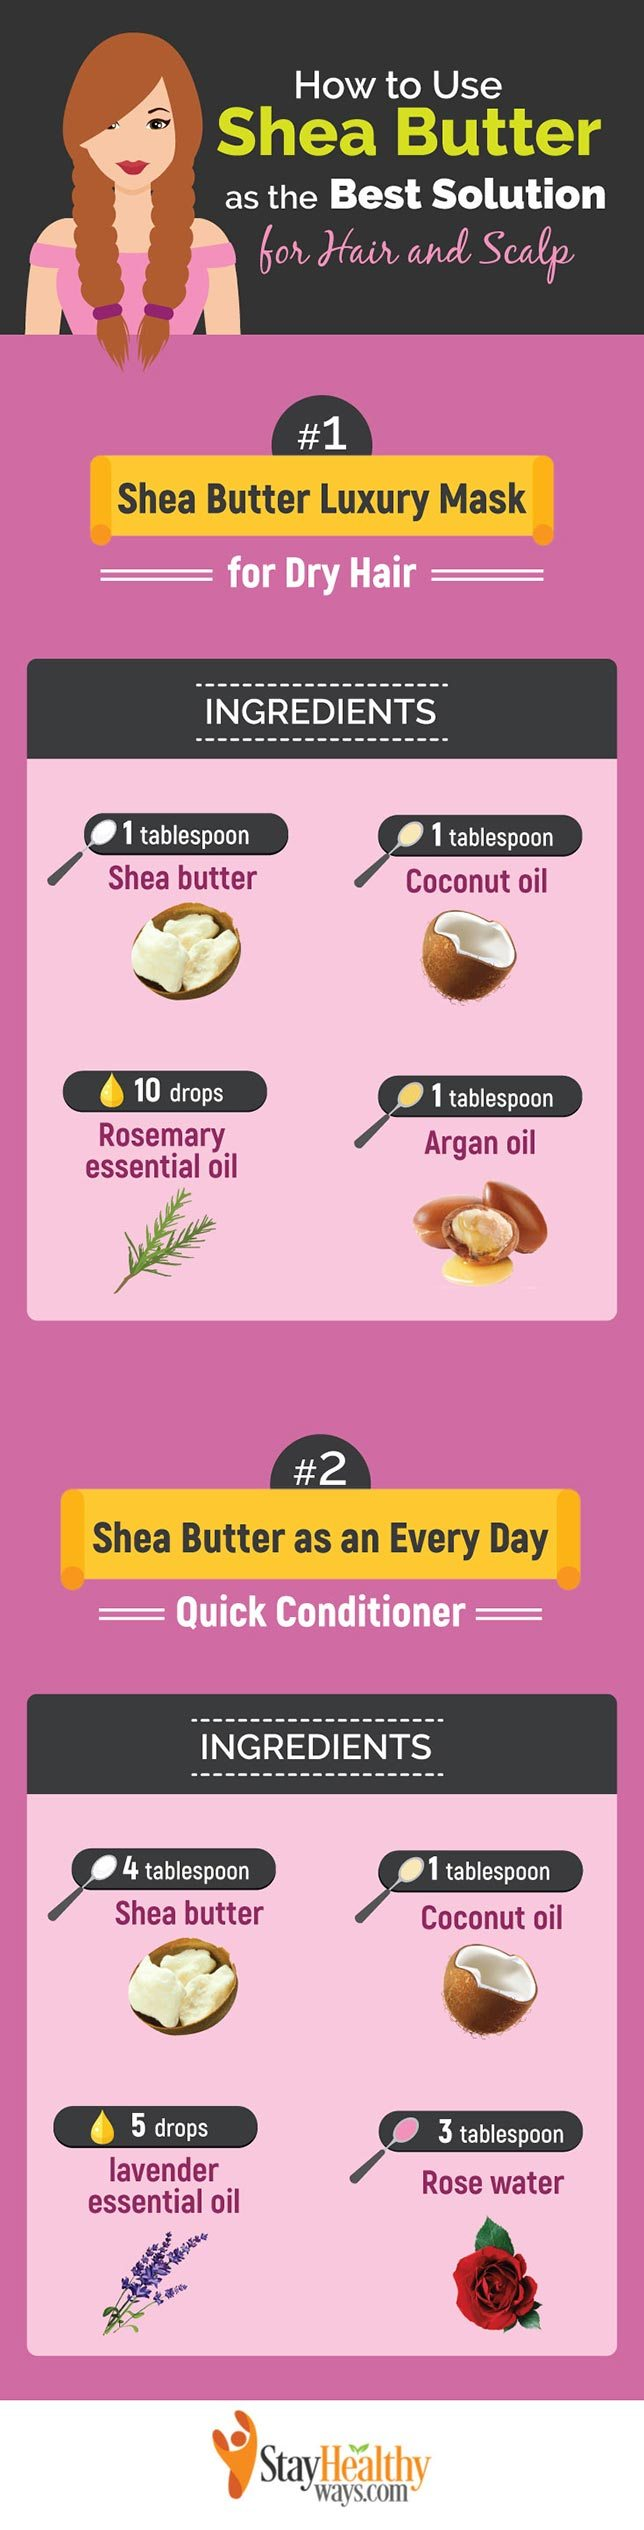 shea butter for hair infographic